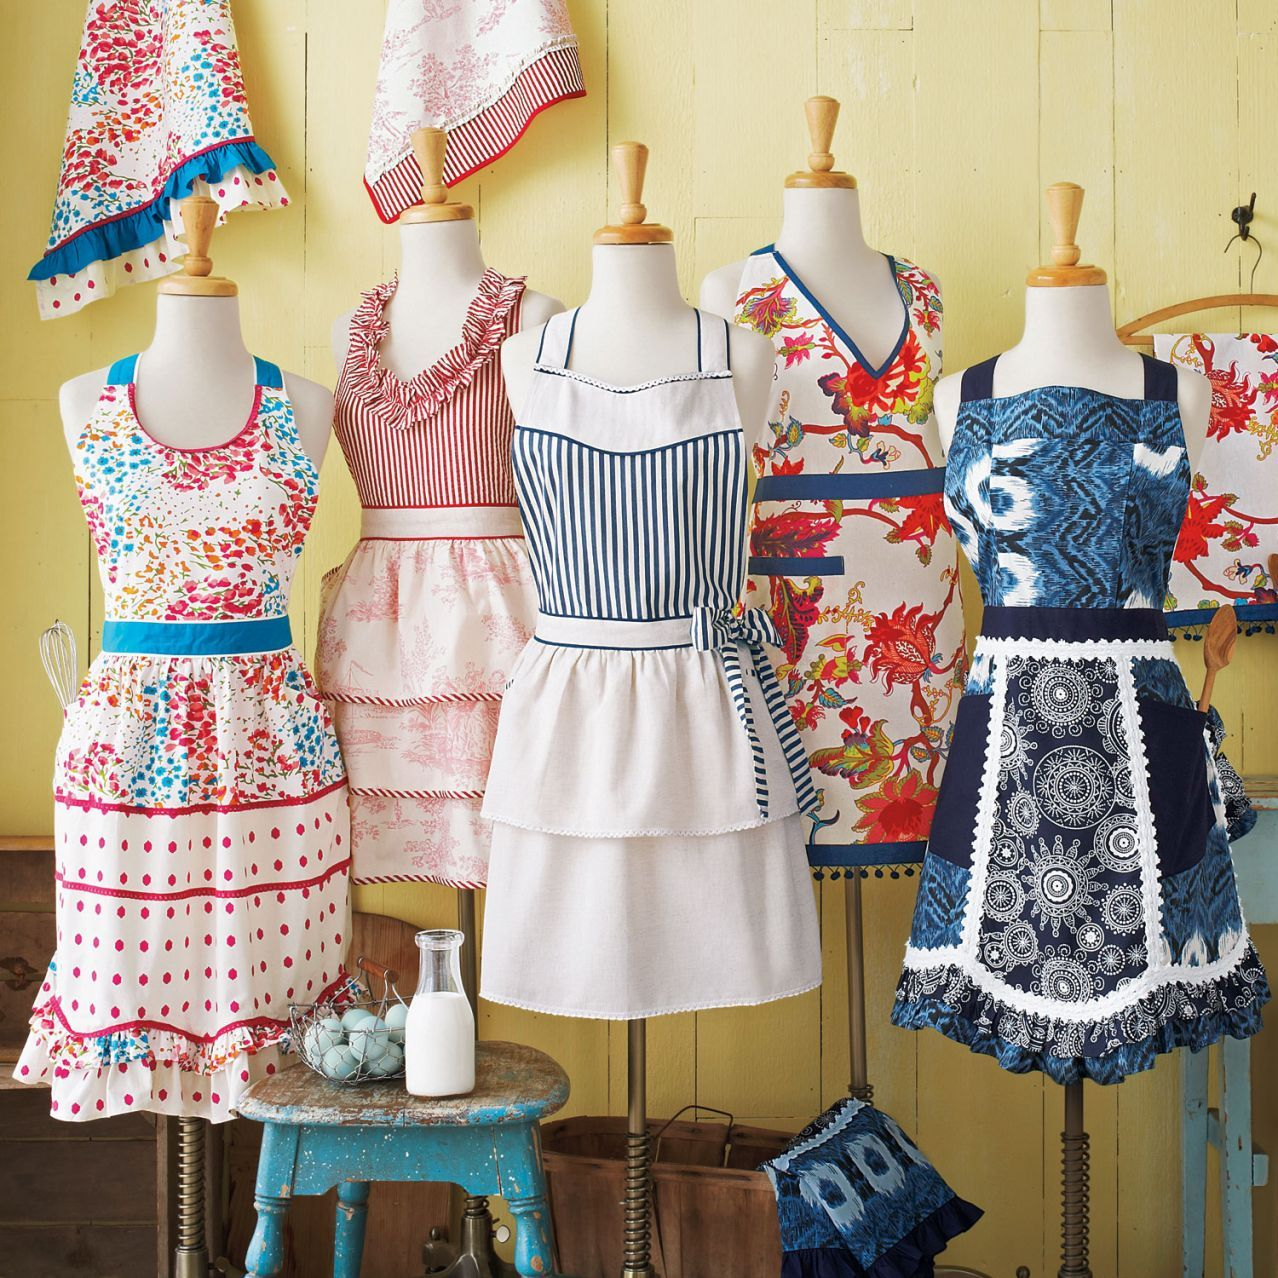 Indigo Bandana Vintage Inspired Apron At Sur La Table Love